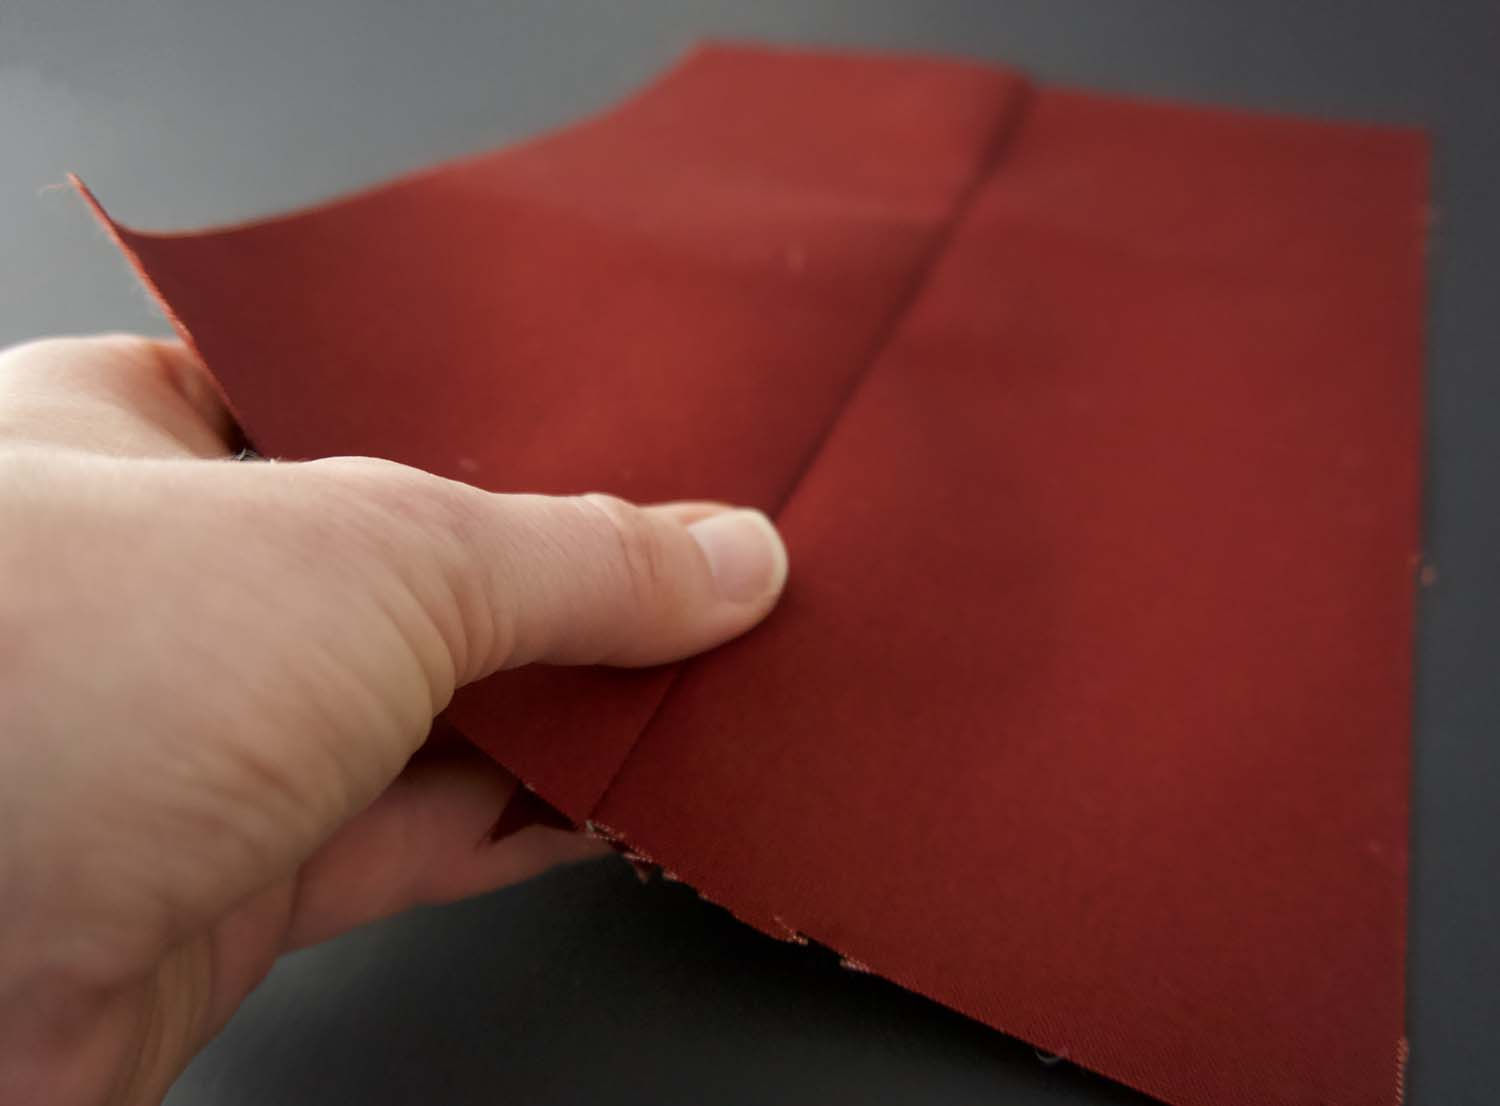 a picture of a thumb pressing down a seam on some dark red oilskin